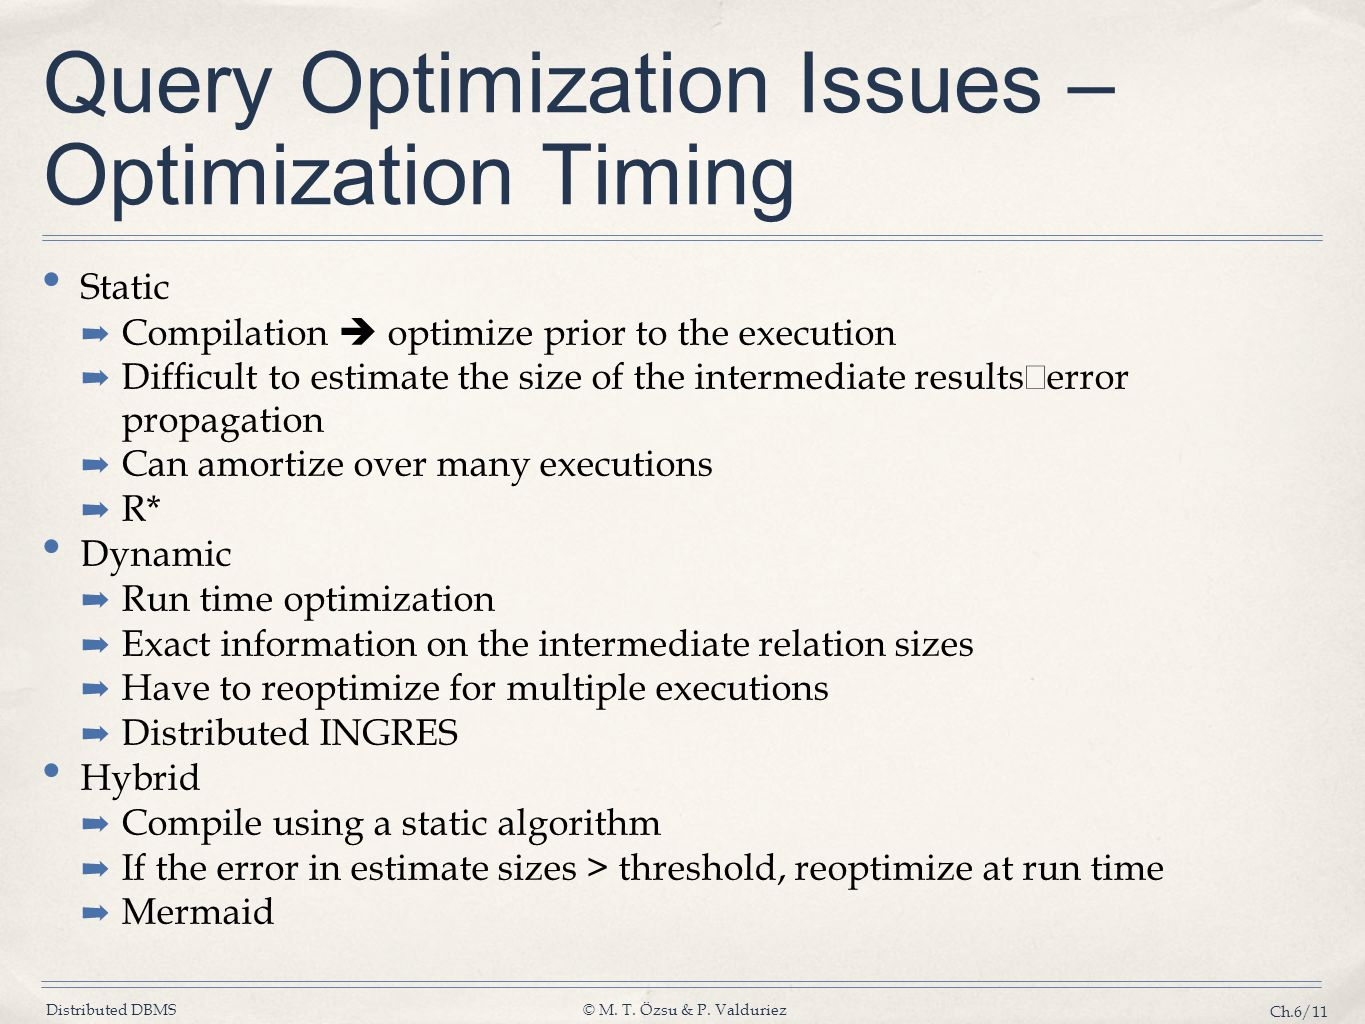 Distributed DBMS© M. T. Özsu & P. Valduriez Ch.6/11 Query Optimization Issues – Optimization Timing Static ➡ Compilation  optimize prior to the execu